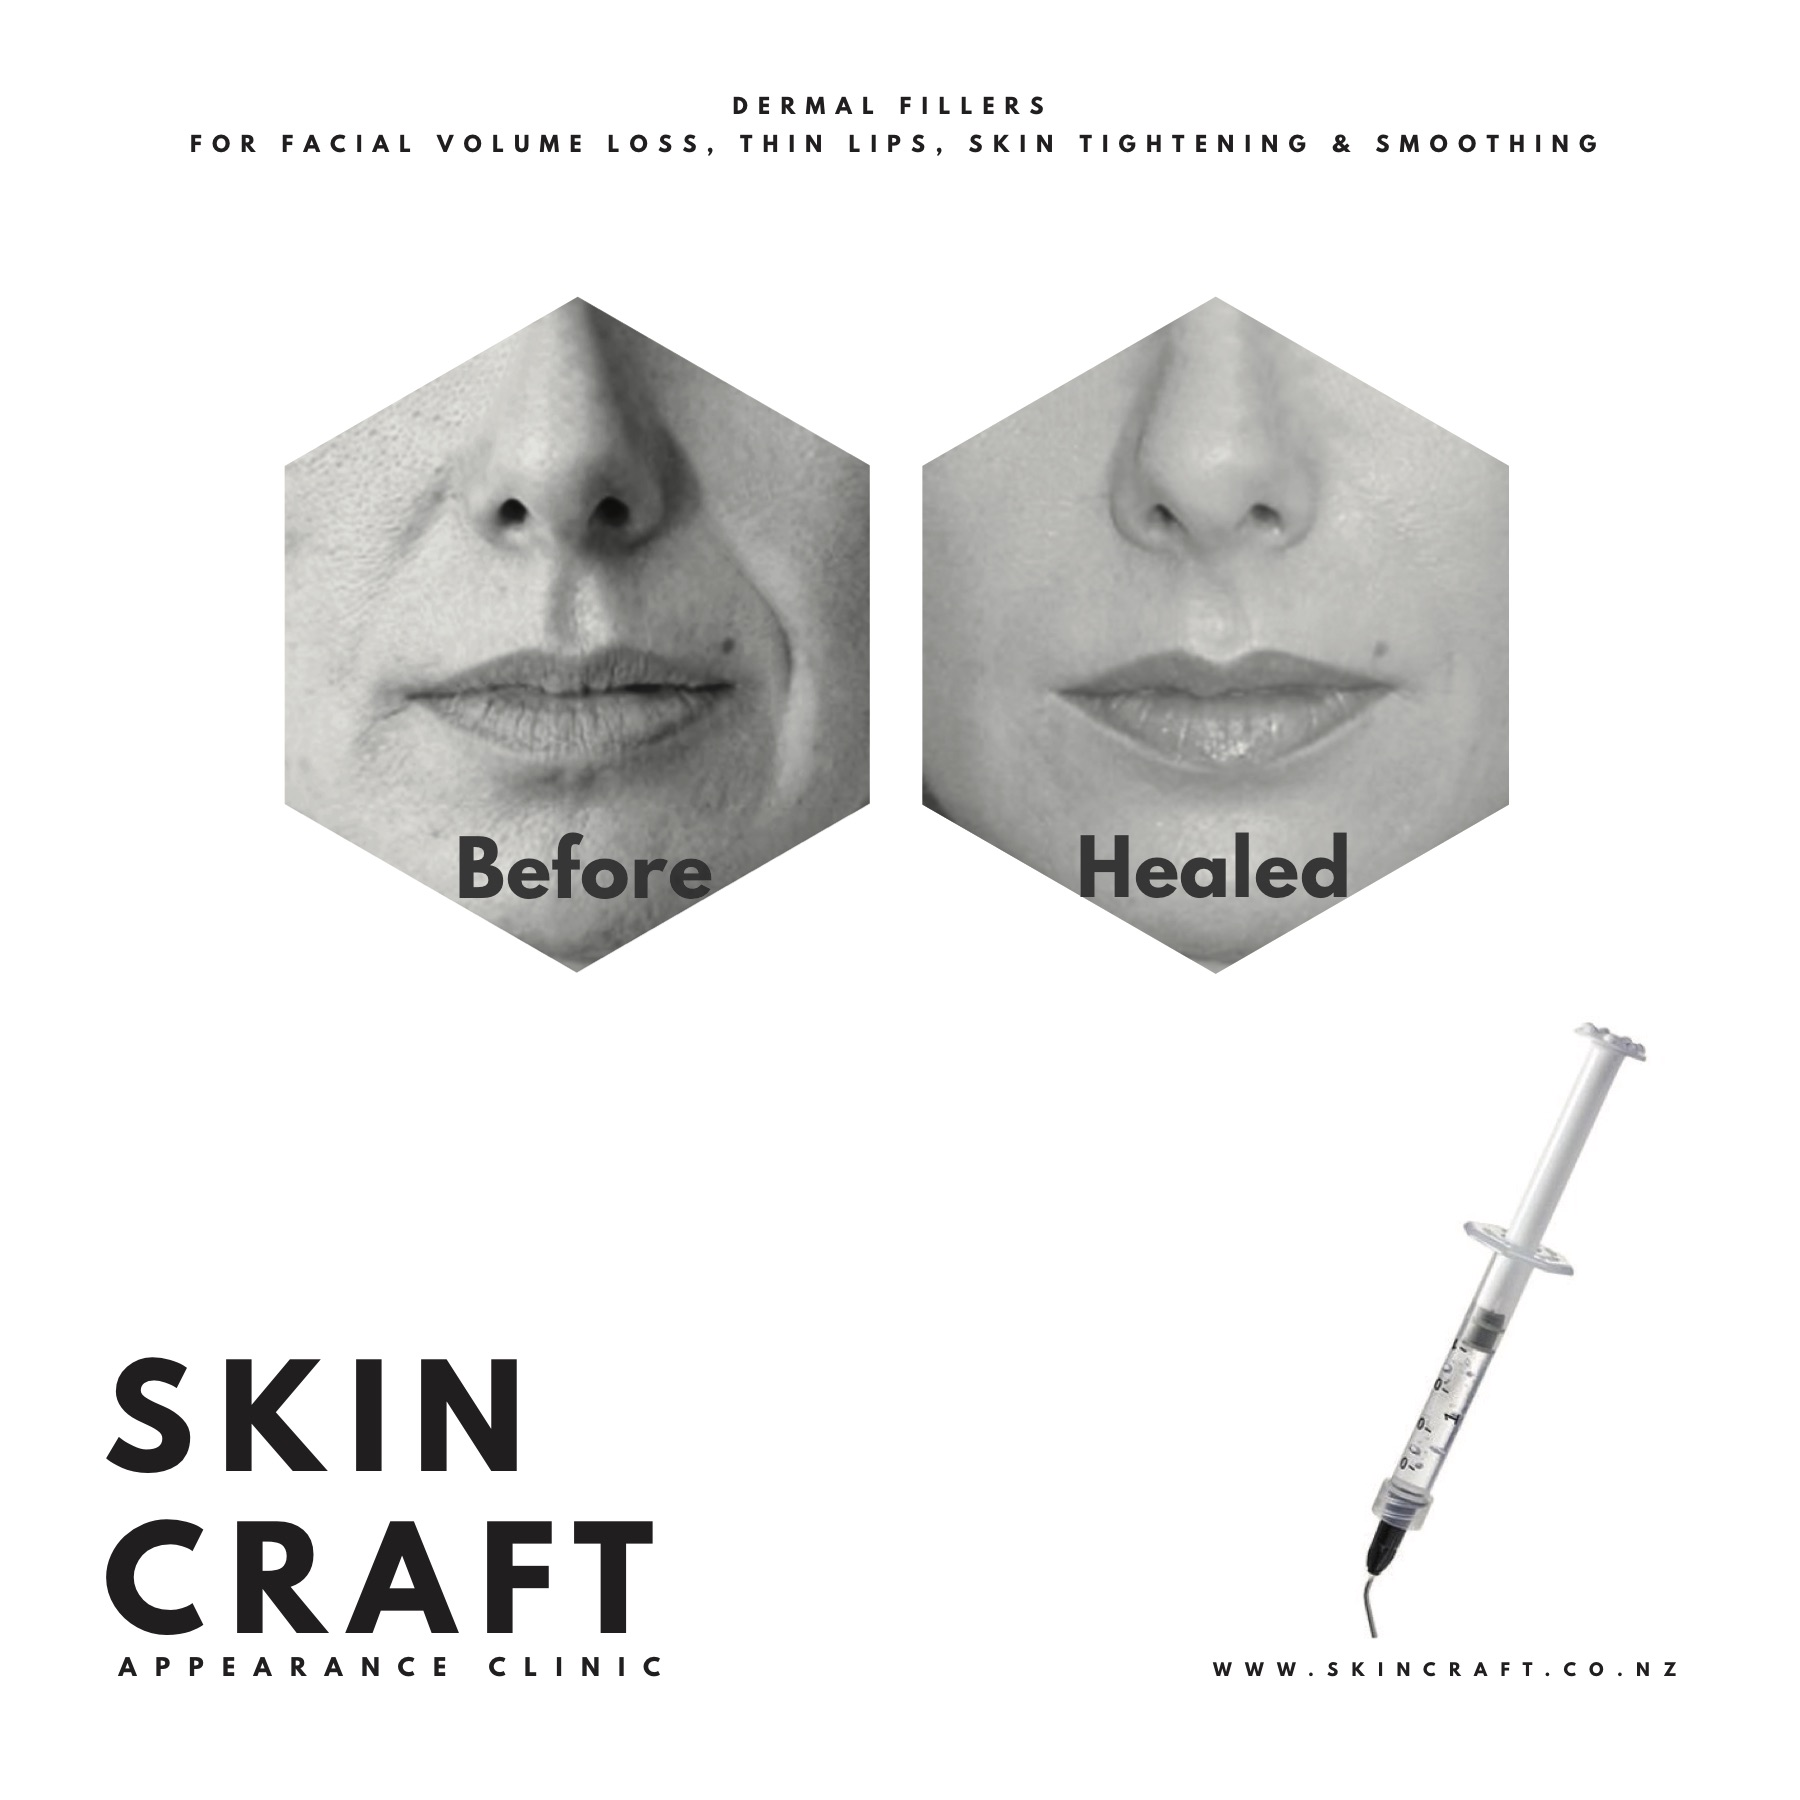 DERMAL FILLERS - Correct volume loss, wrinkles and folds instantly!Fillers are a cosmetic injectable that create an instant plump, youthful-looking skin with results lasting 12-24 months.Reducing the appearance of lines & wrinkles, creating fuller lips and facial volume, one of the most visible signs of aging.